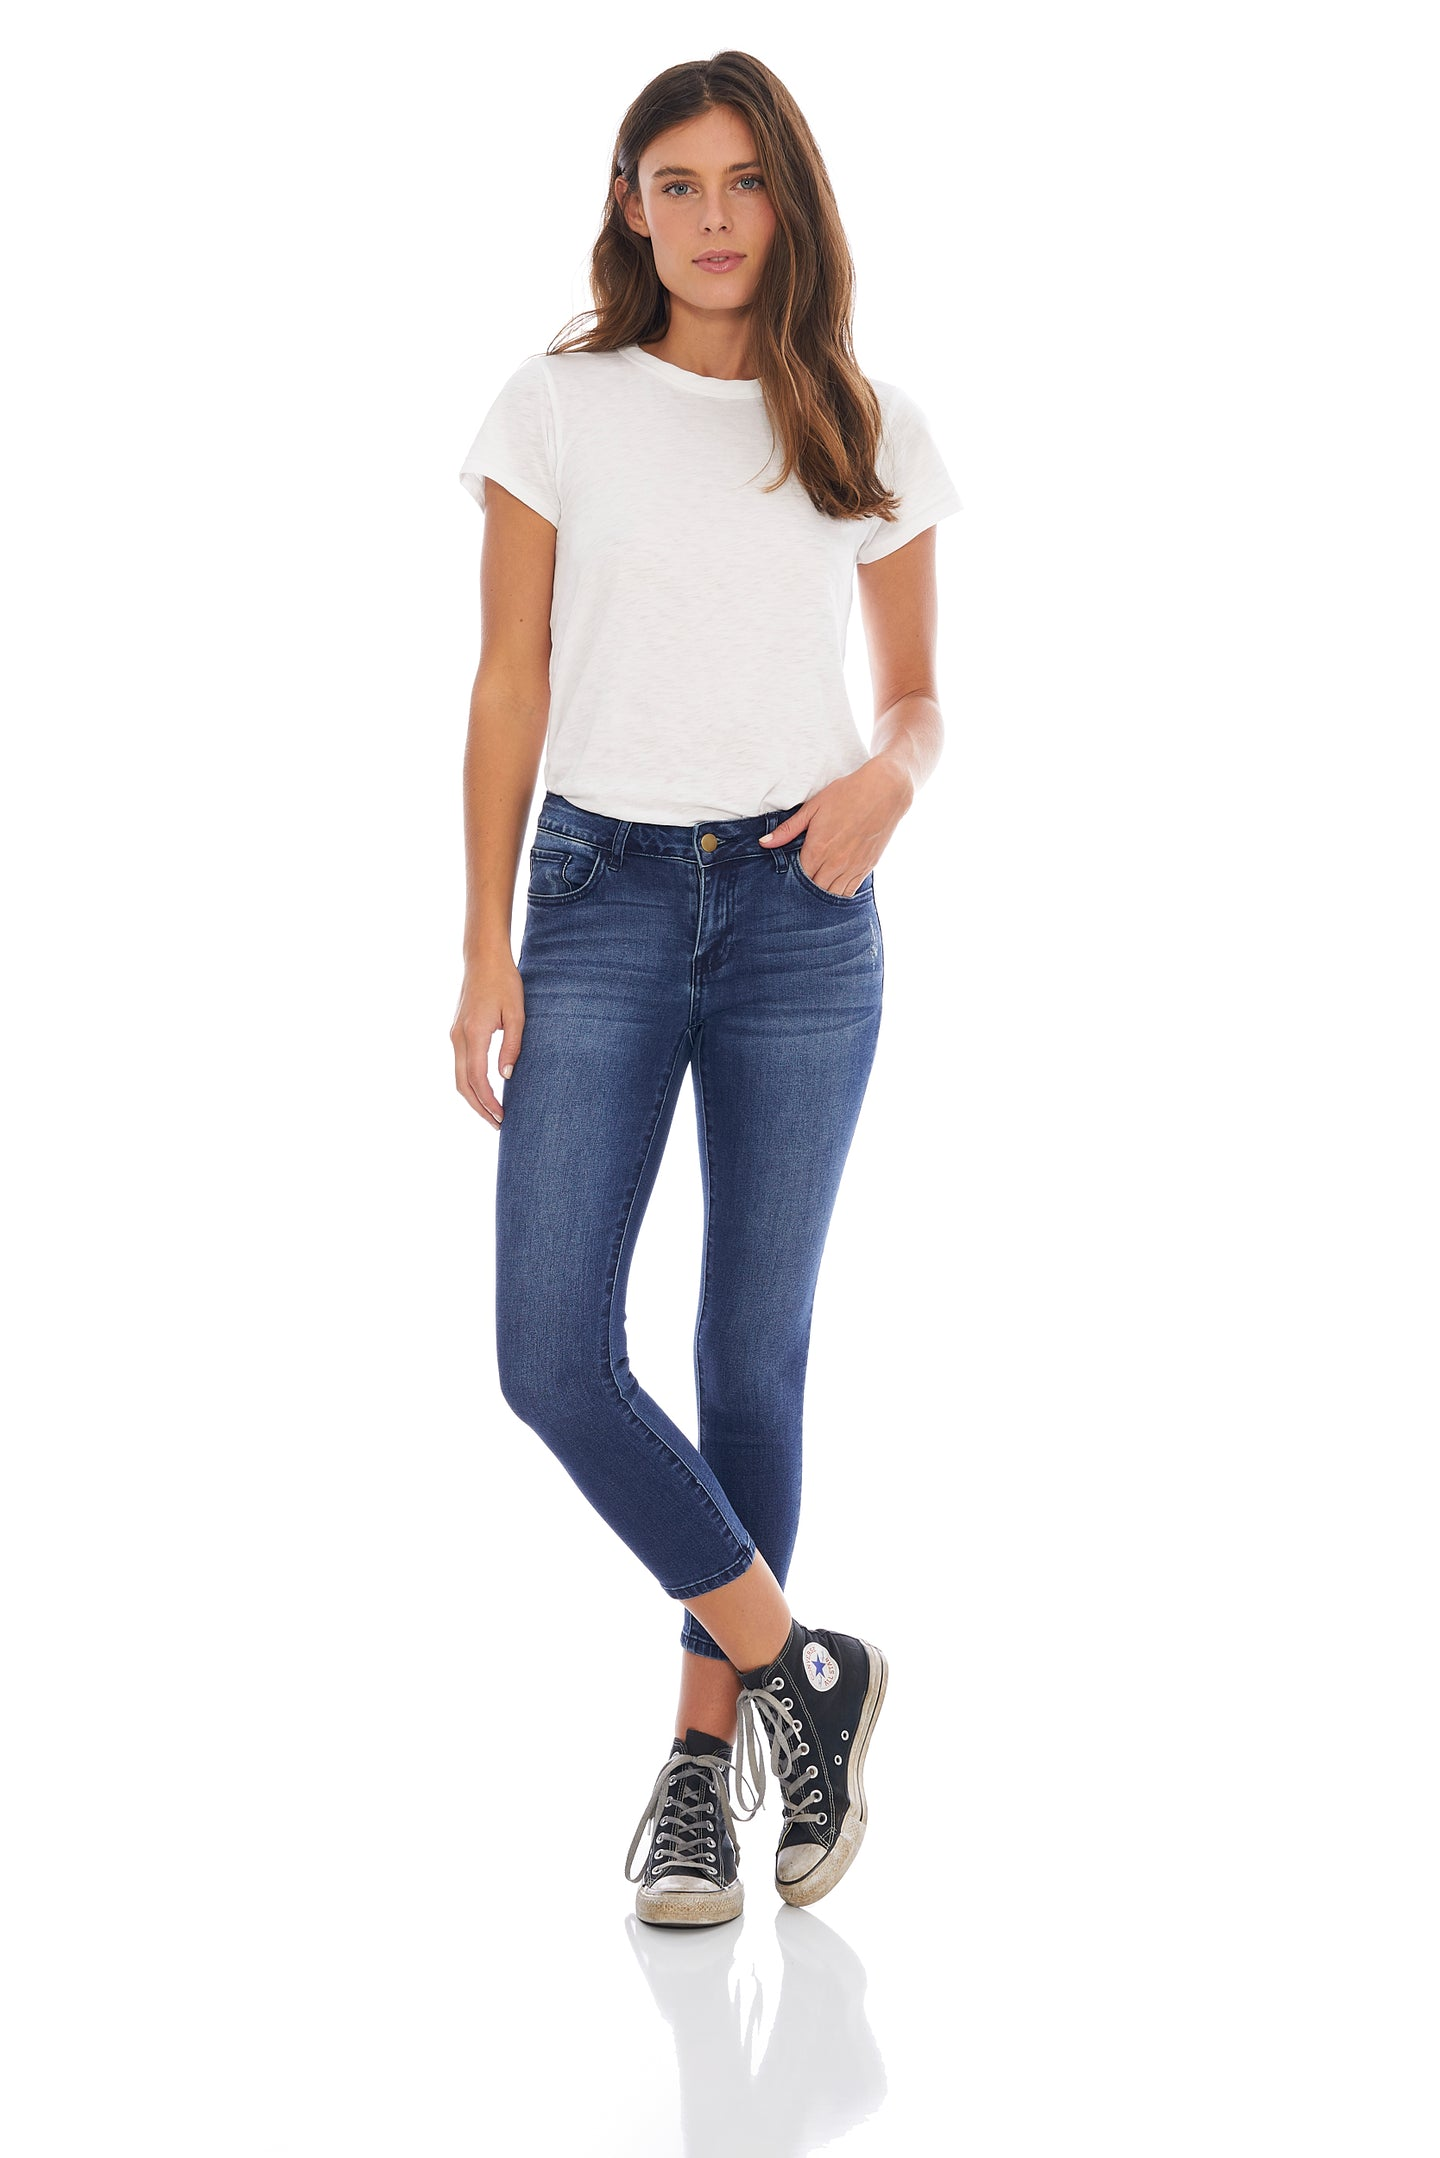 MADE IN BLUE AUDREY CROP SUPER SOFT SKINNY